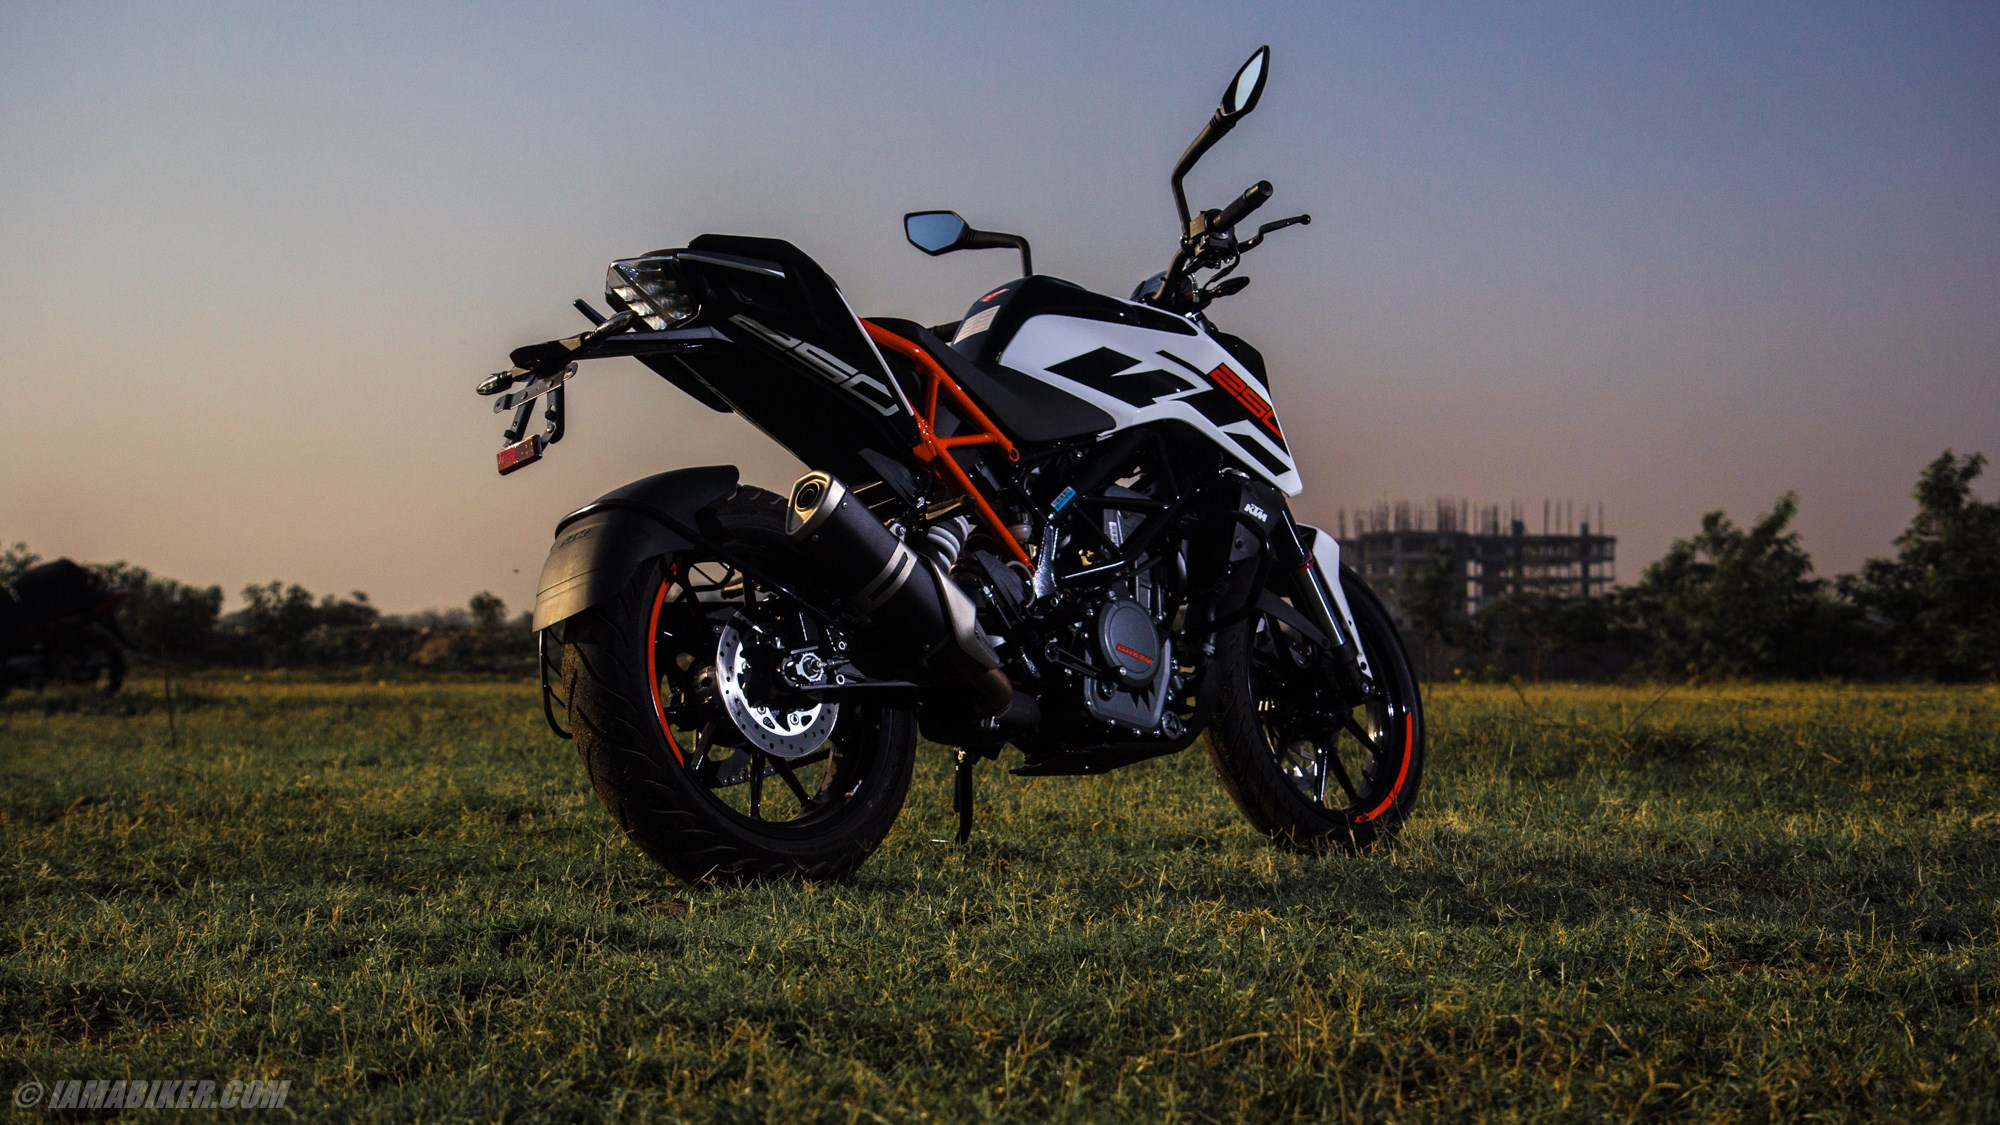 Ktm Duke 250 Hd Wallpapers Iamabiker Everything Motorcycle